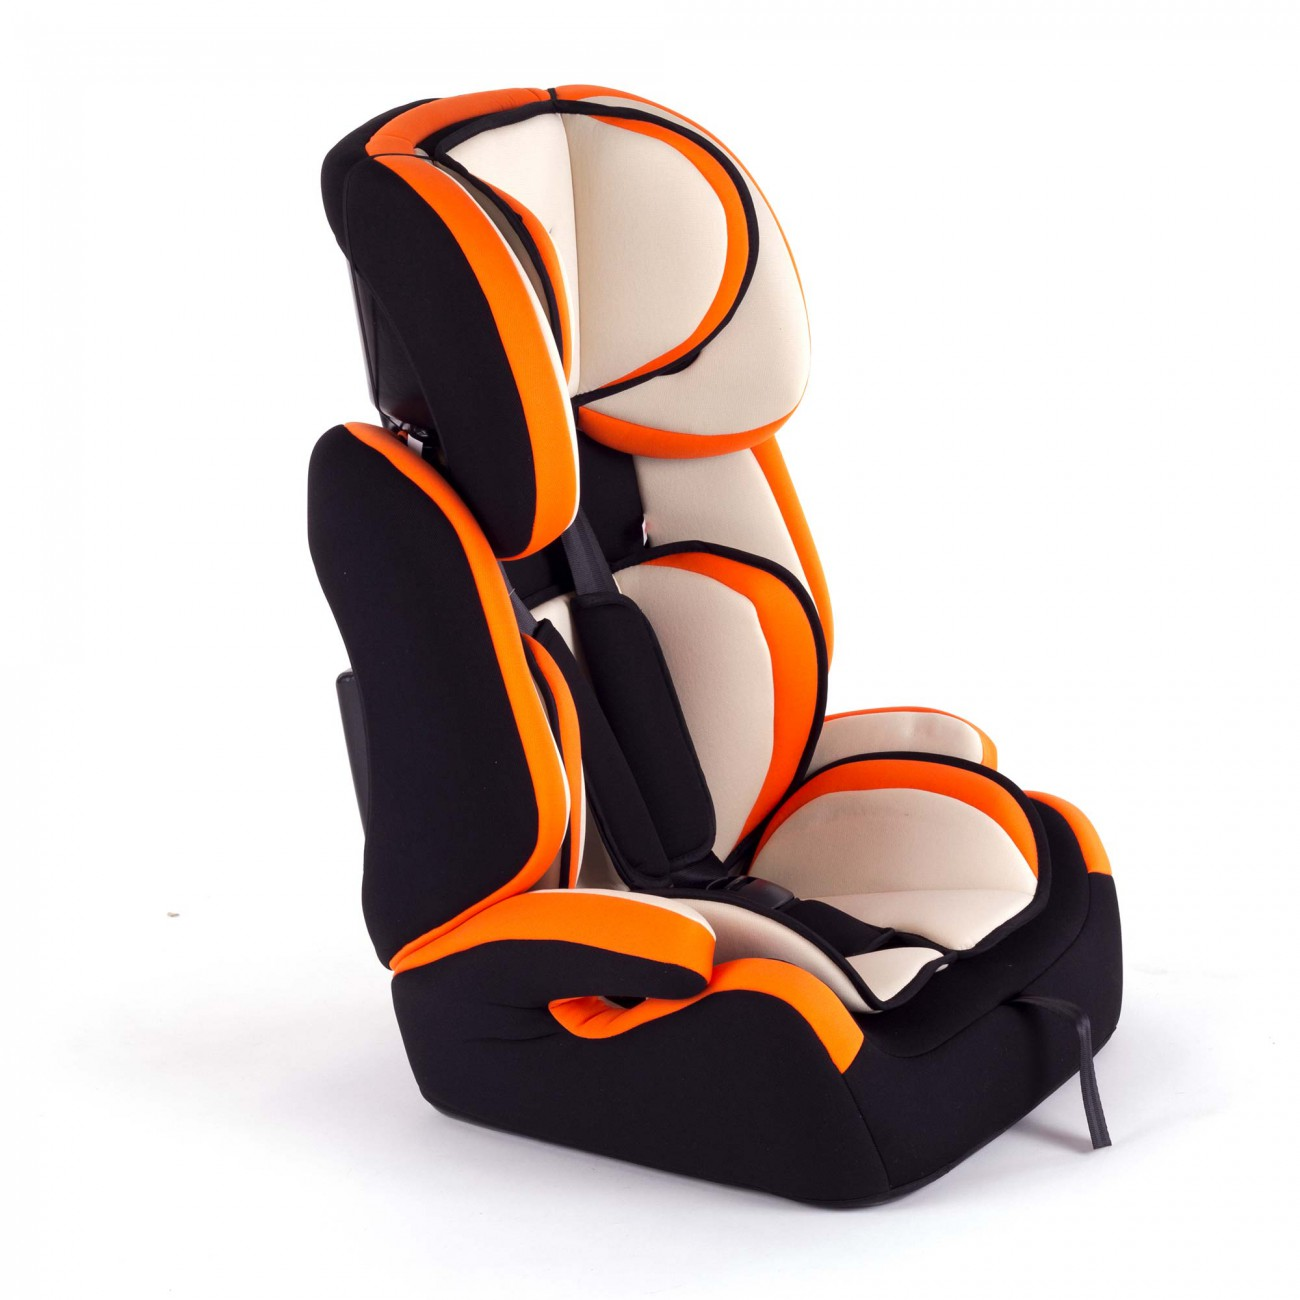 baby vivo kindersitz autositz tom von 9 36 kg f r gruppe 1 2 3 in orange creme baby kind. Black Bedroom Furniture Sets. Home Design Ideas